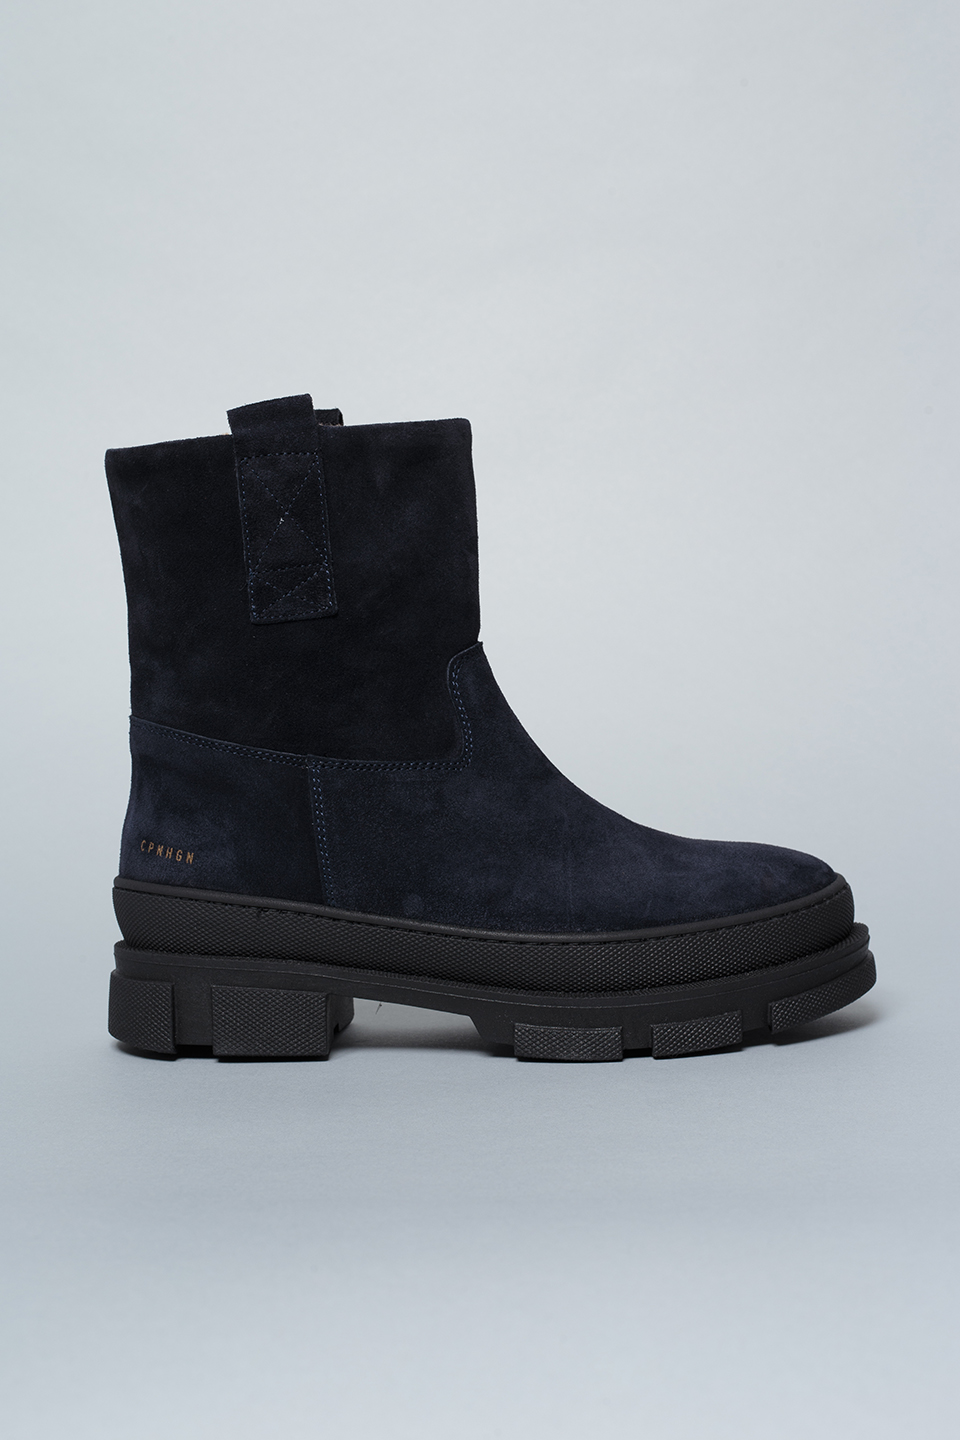 CPH507 crosta navy - alternative 2